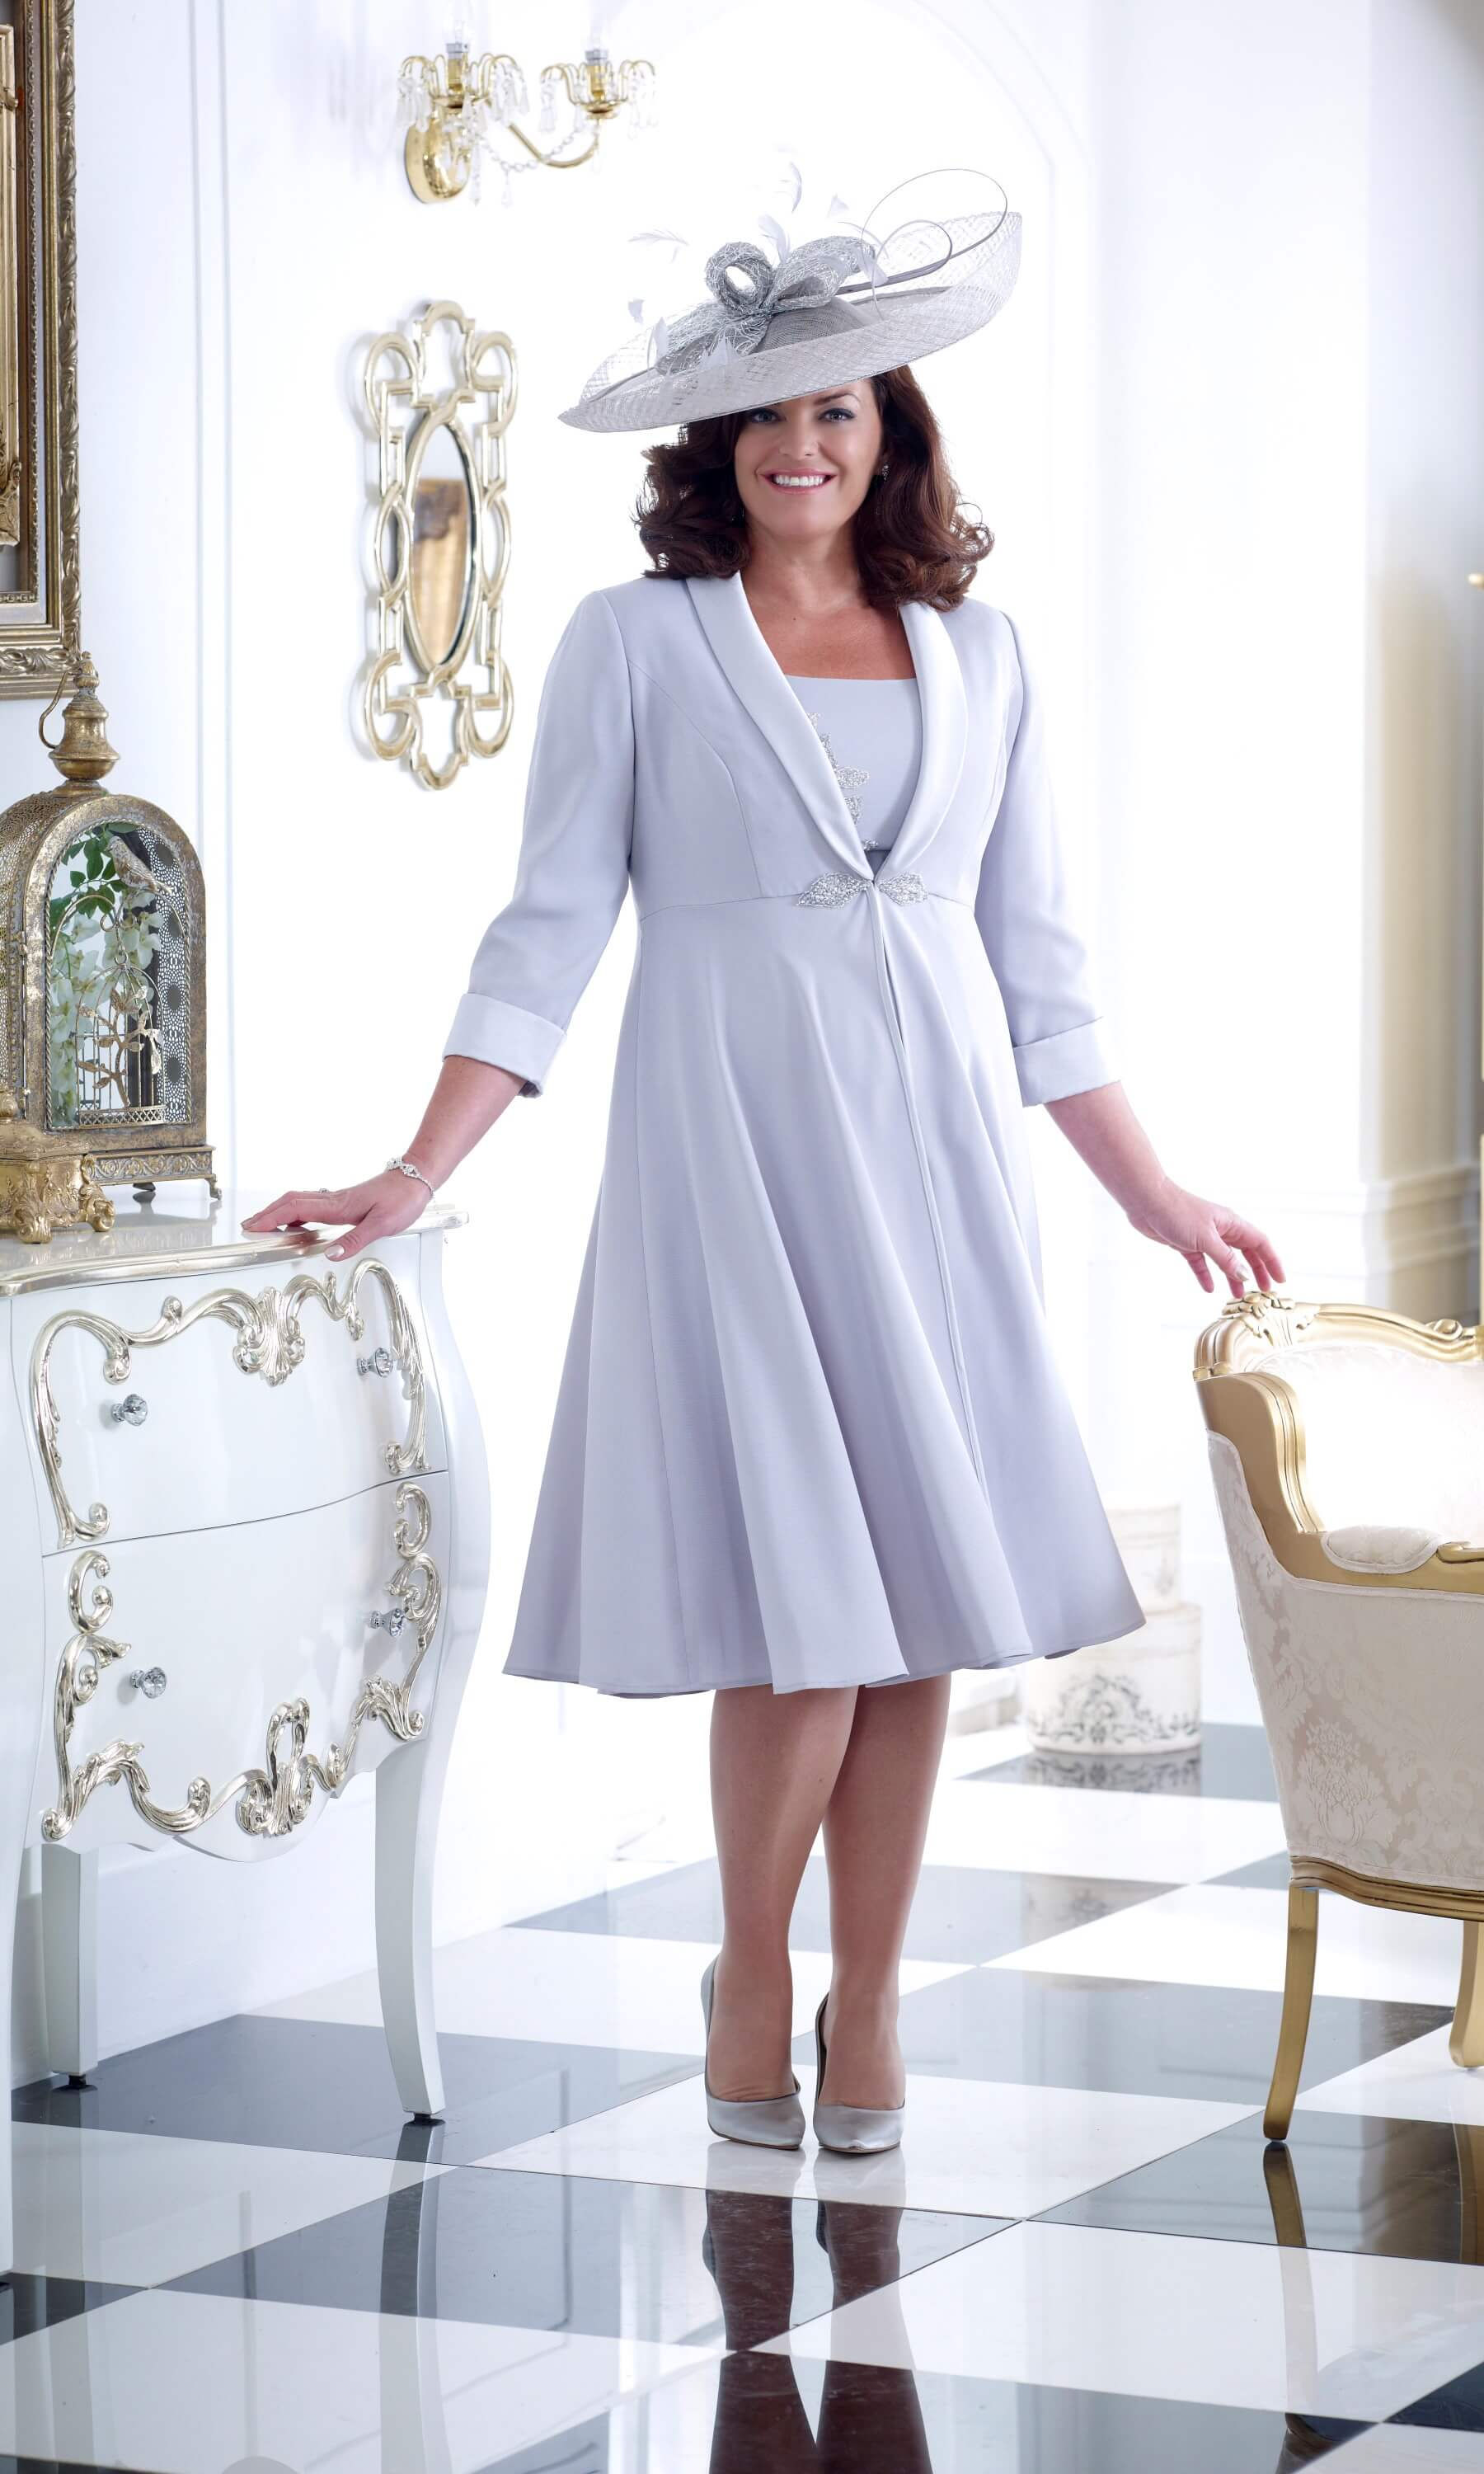 Dress Coat Mother Of The Bride Groom Outfits From Fab Frocks